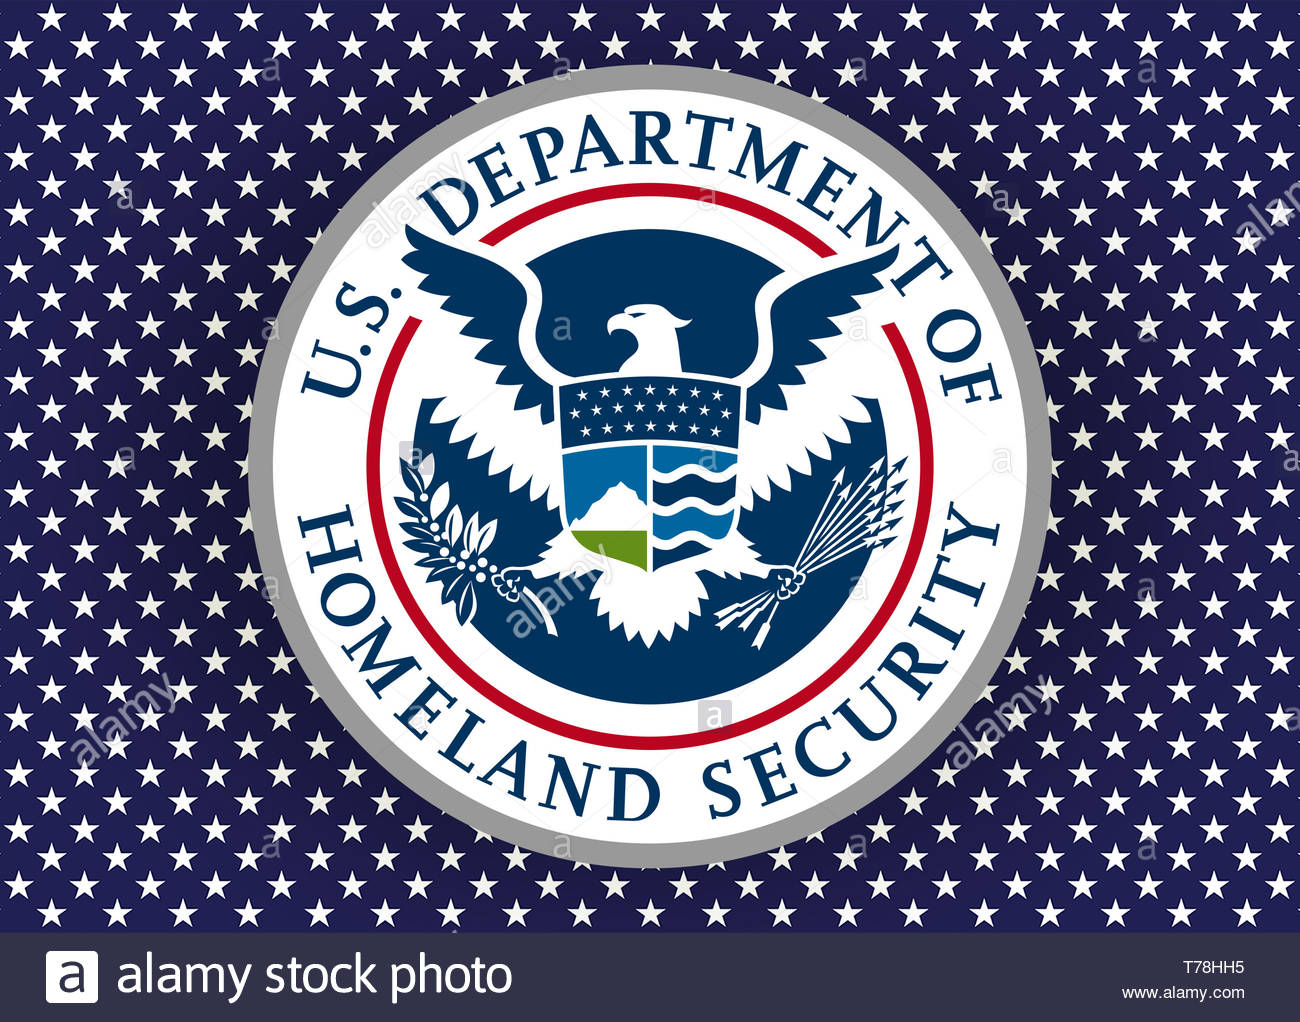 United States Department of Homeland Security DHS logo seal - Stock Image